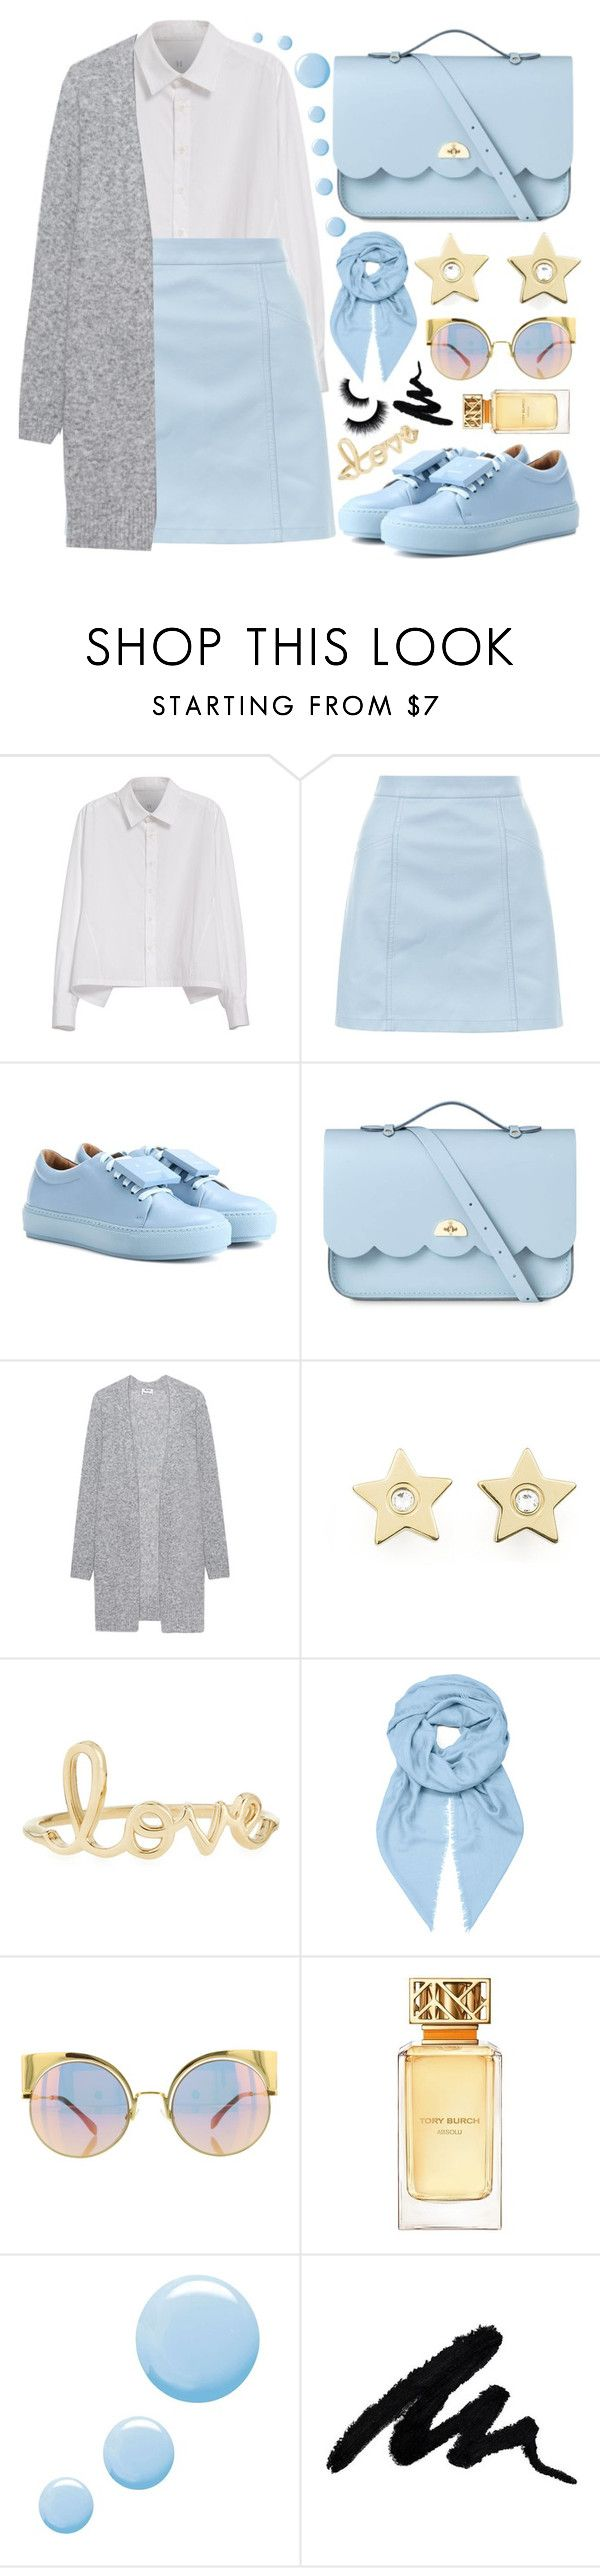 """""""Blue!"""" by sanela-enter ❤ liked on Polyvore featuring Y's by Yohji Yamamoto, New Look, Acne Studios, The Cambridge Satchel Company, Tommy Hilfiger, Sydney Evan, Loewe, Fendi, Tory Burch and Topshop"""